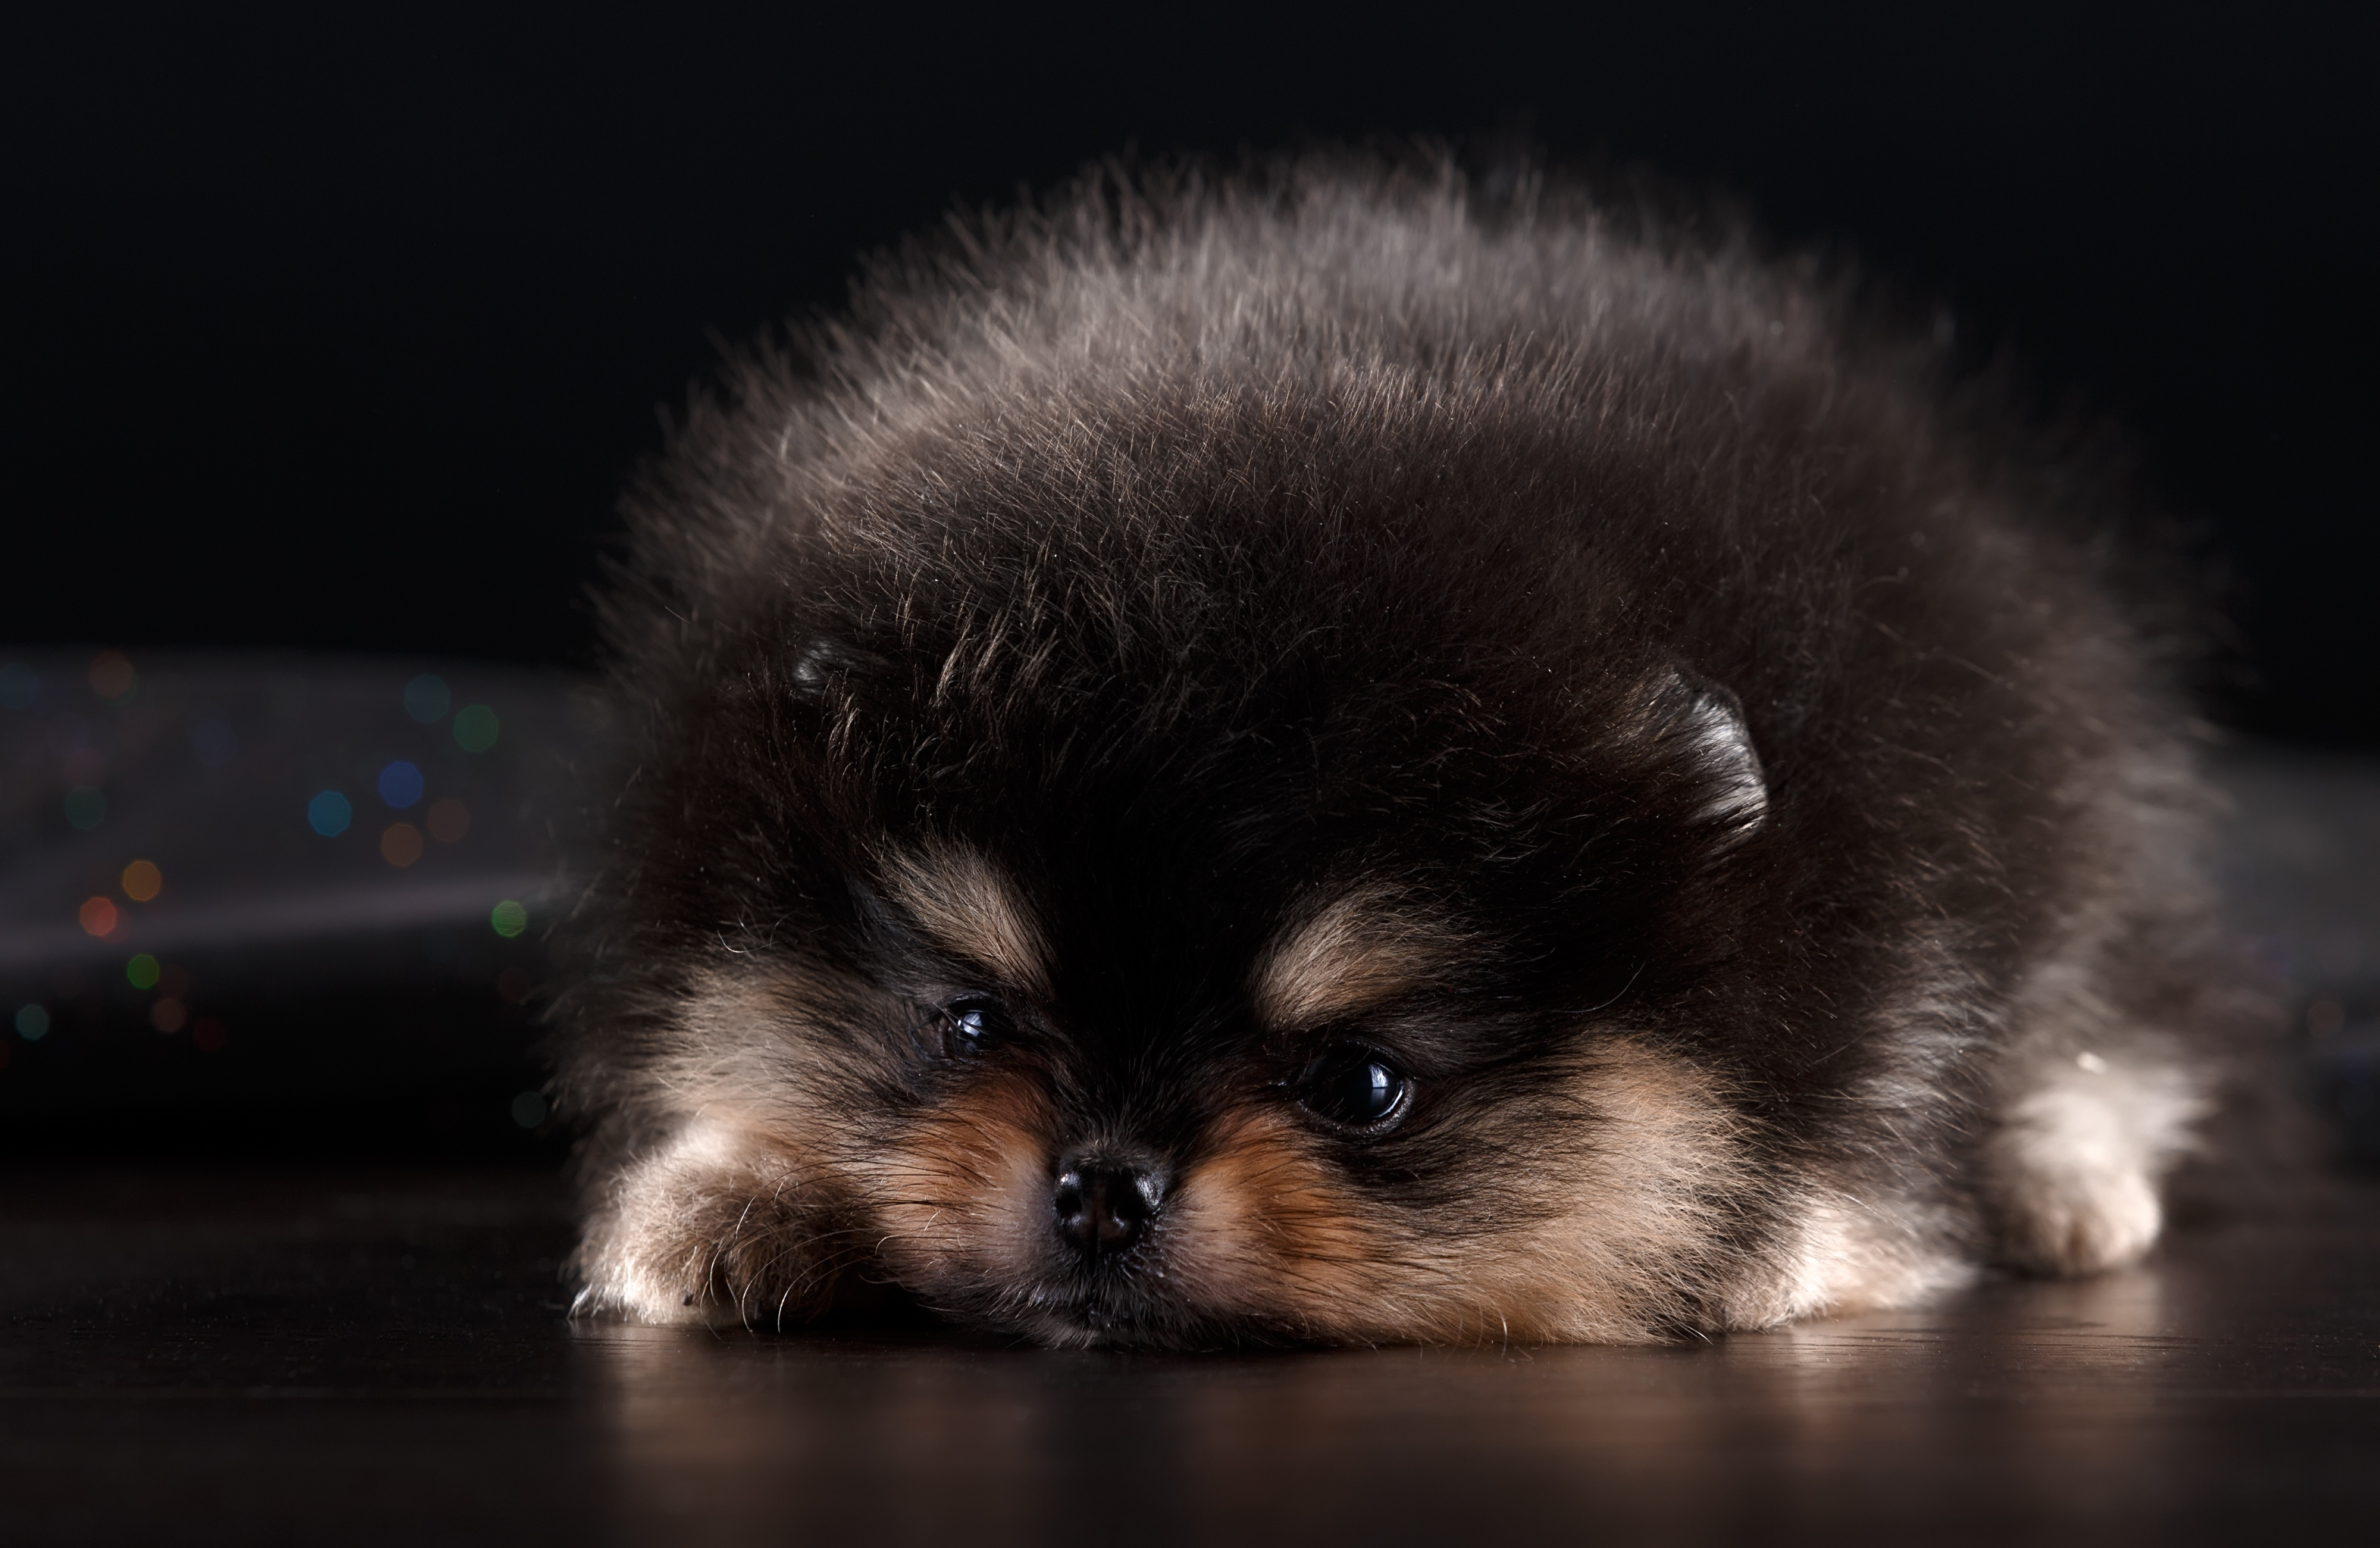 151703 download wallpaper Animals, Spitz, Puppy, Dog, Fluffy, Nice, Sweetheart screensavers and pictures for free